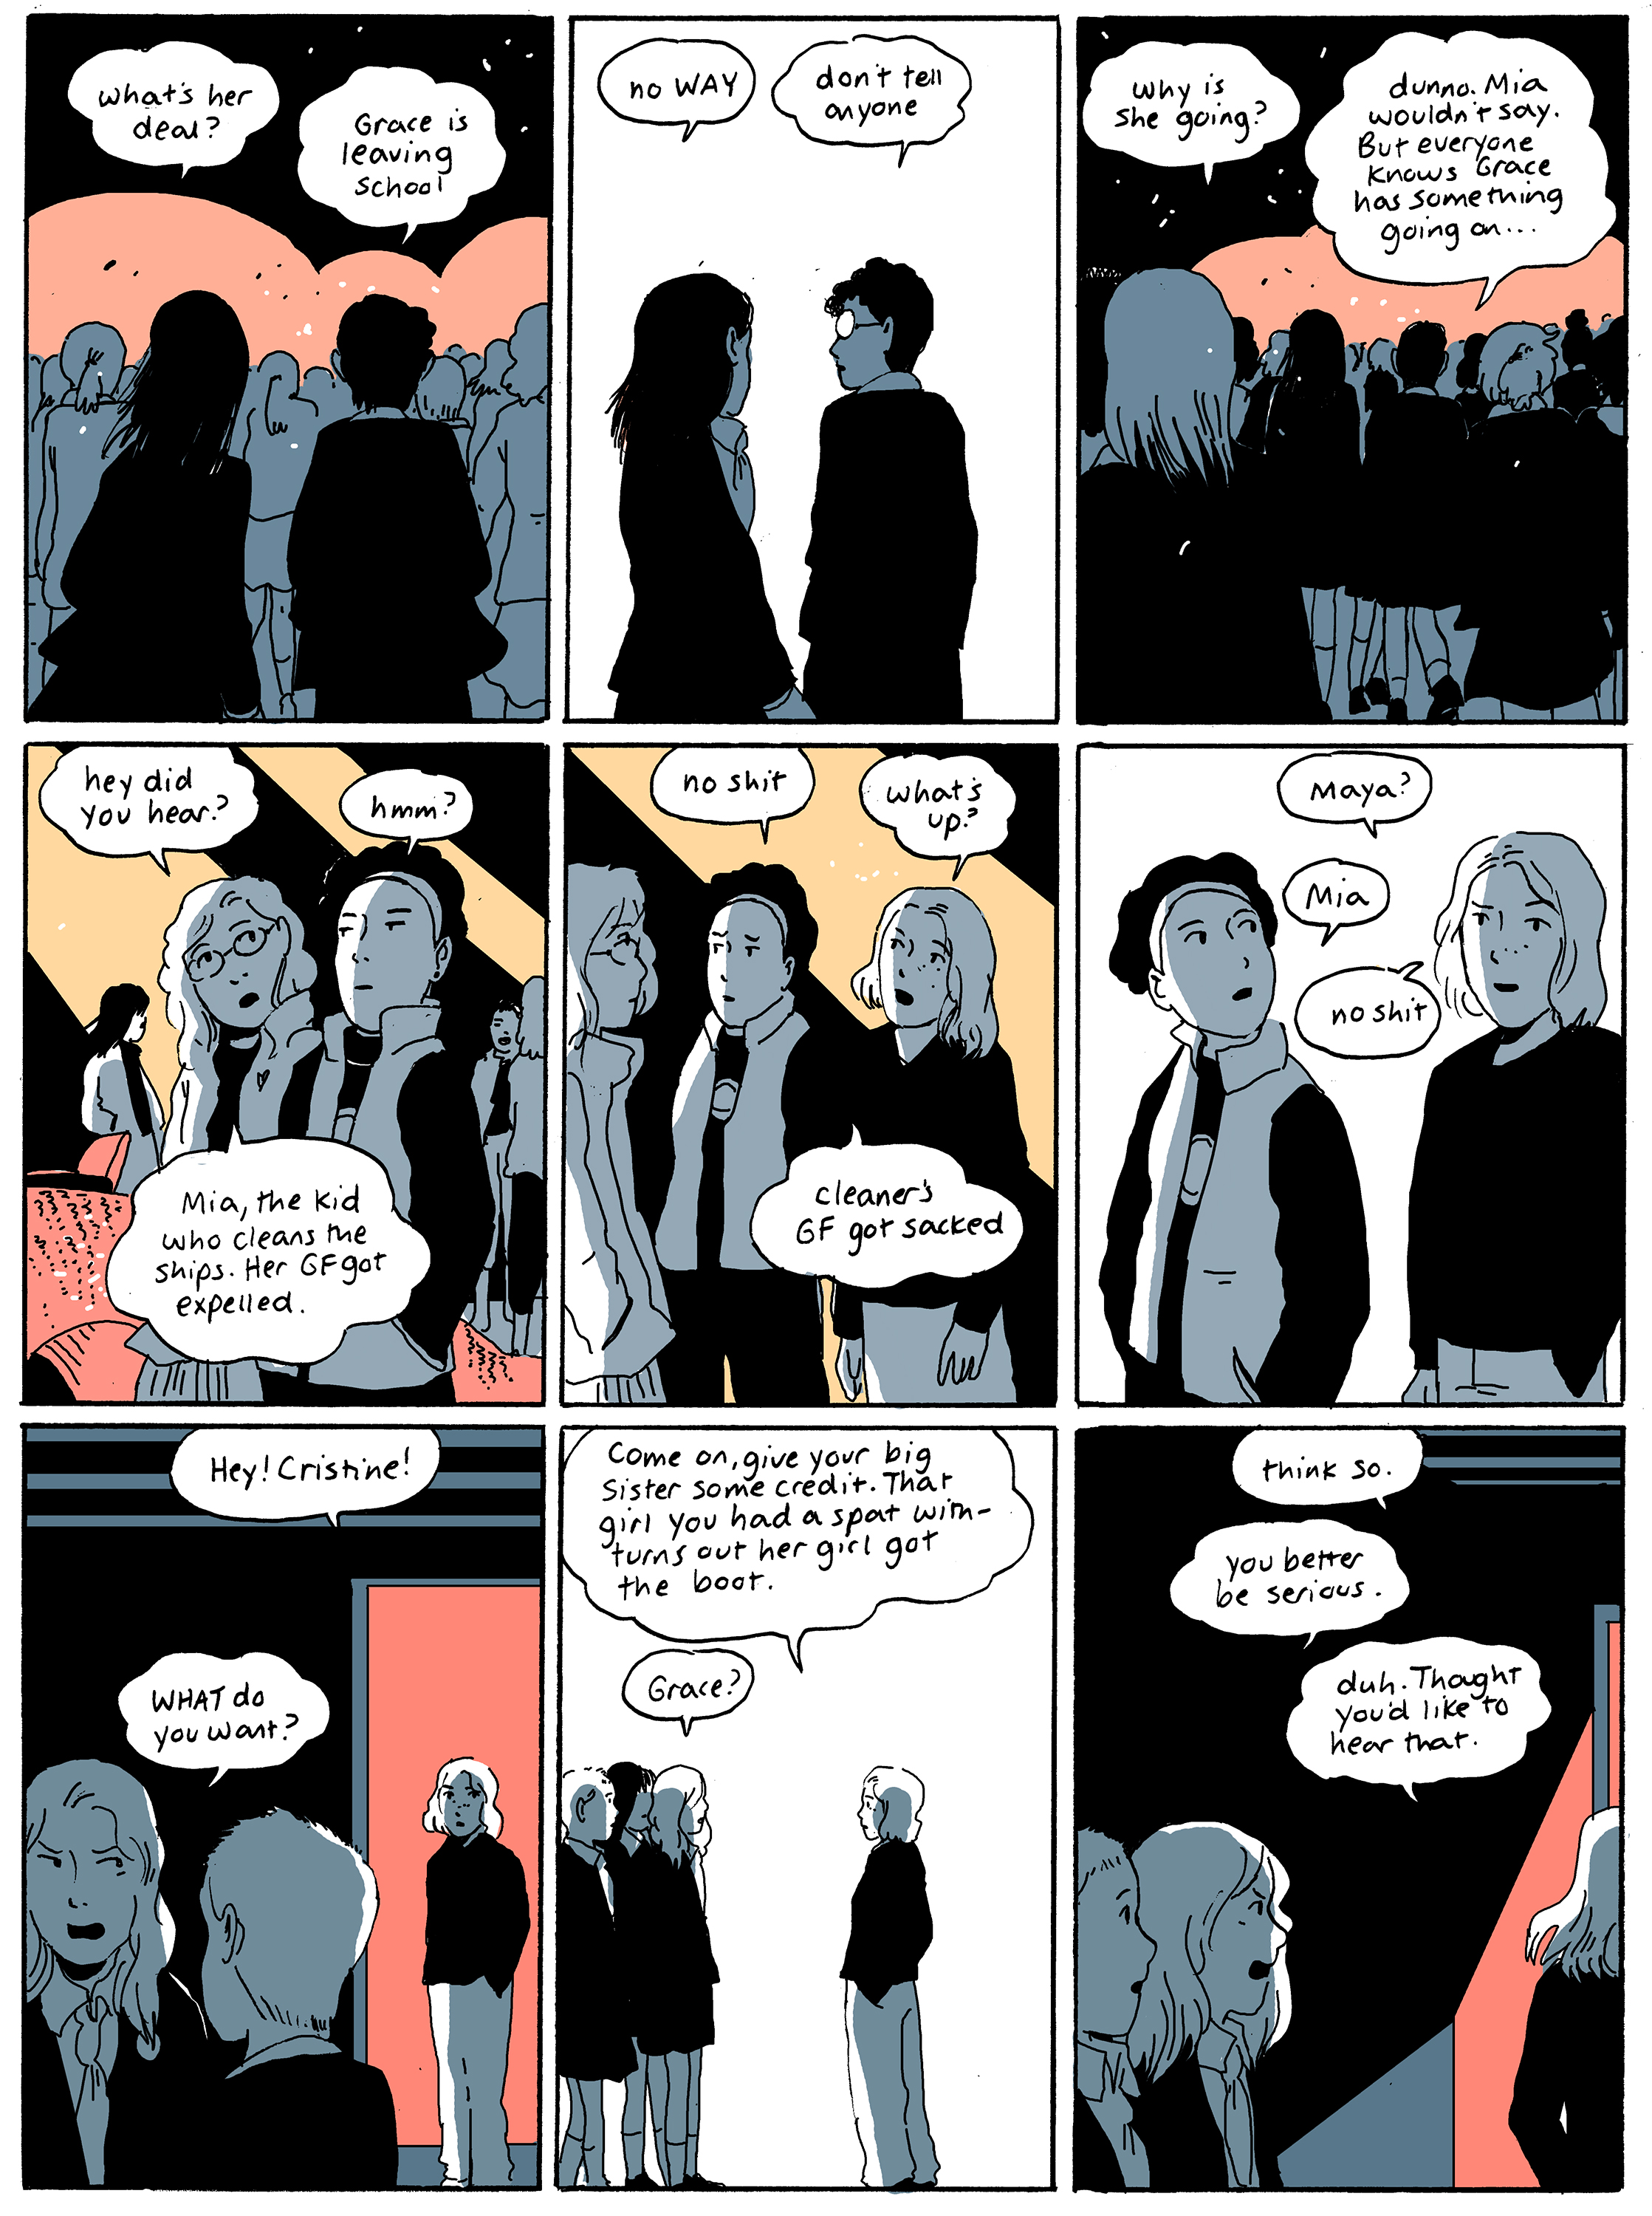 chapter11_page18.jpg